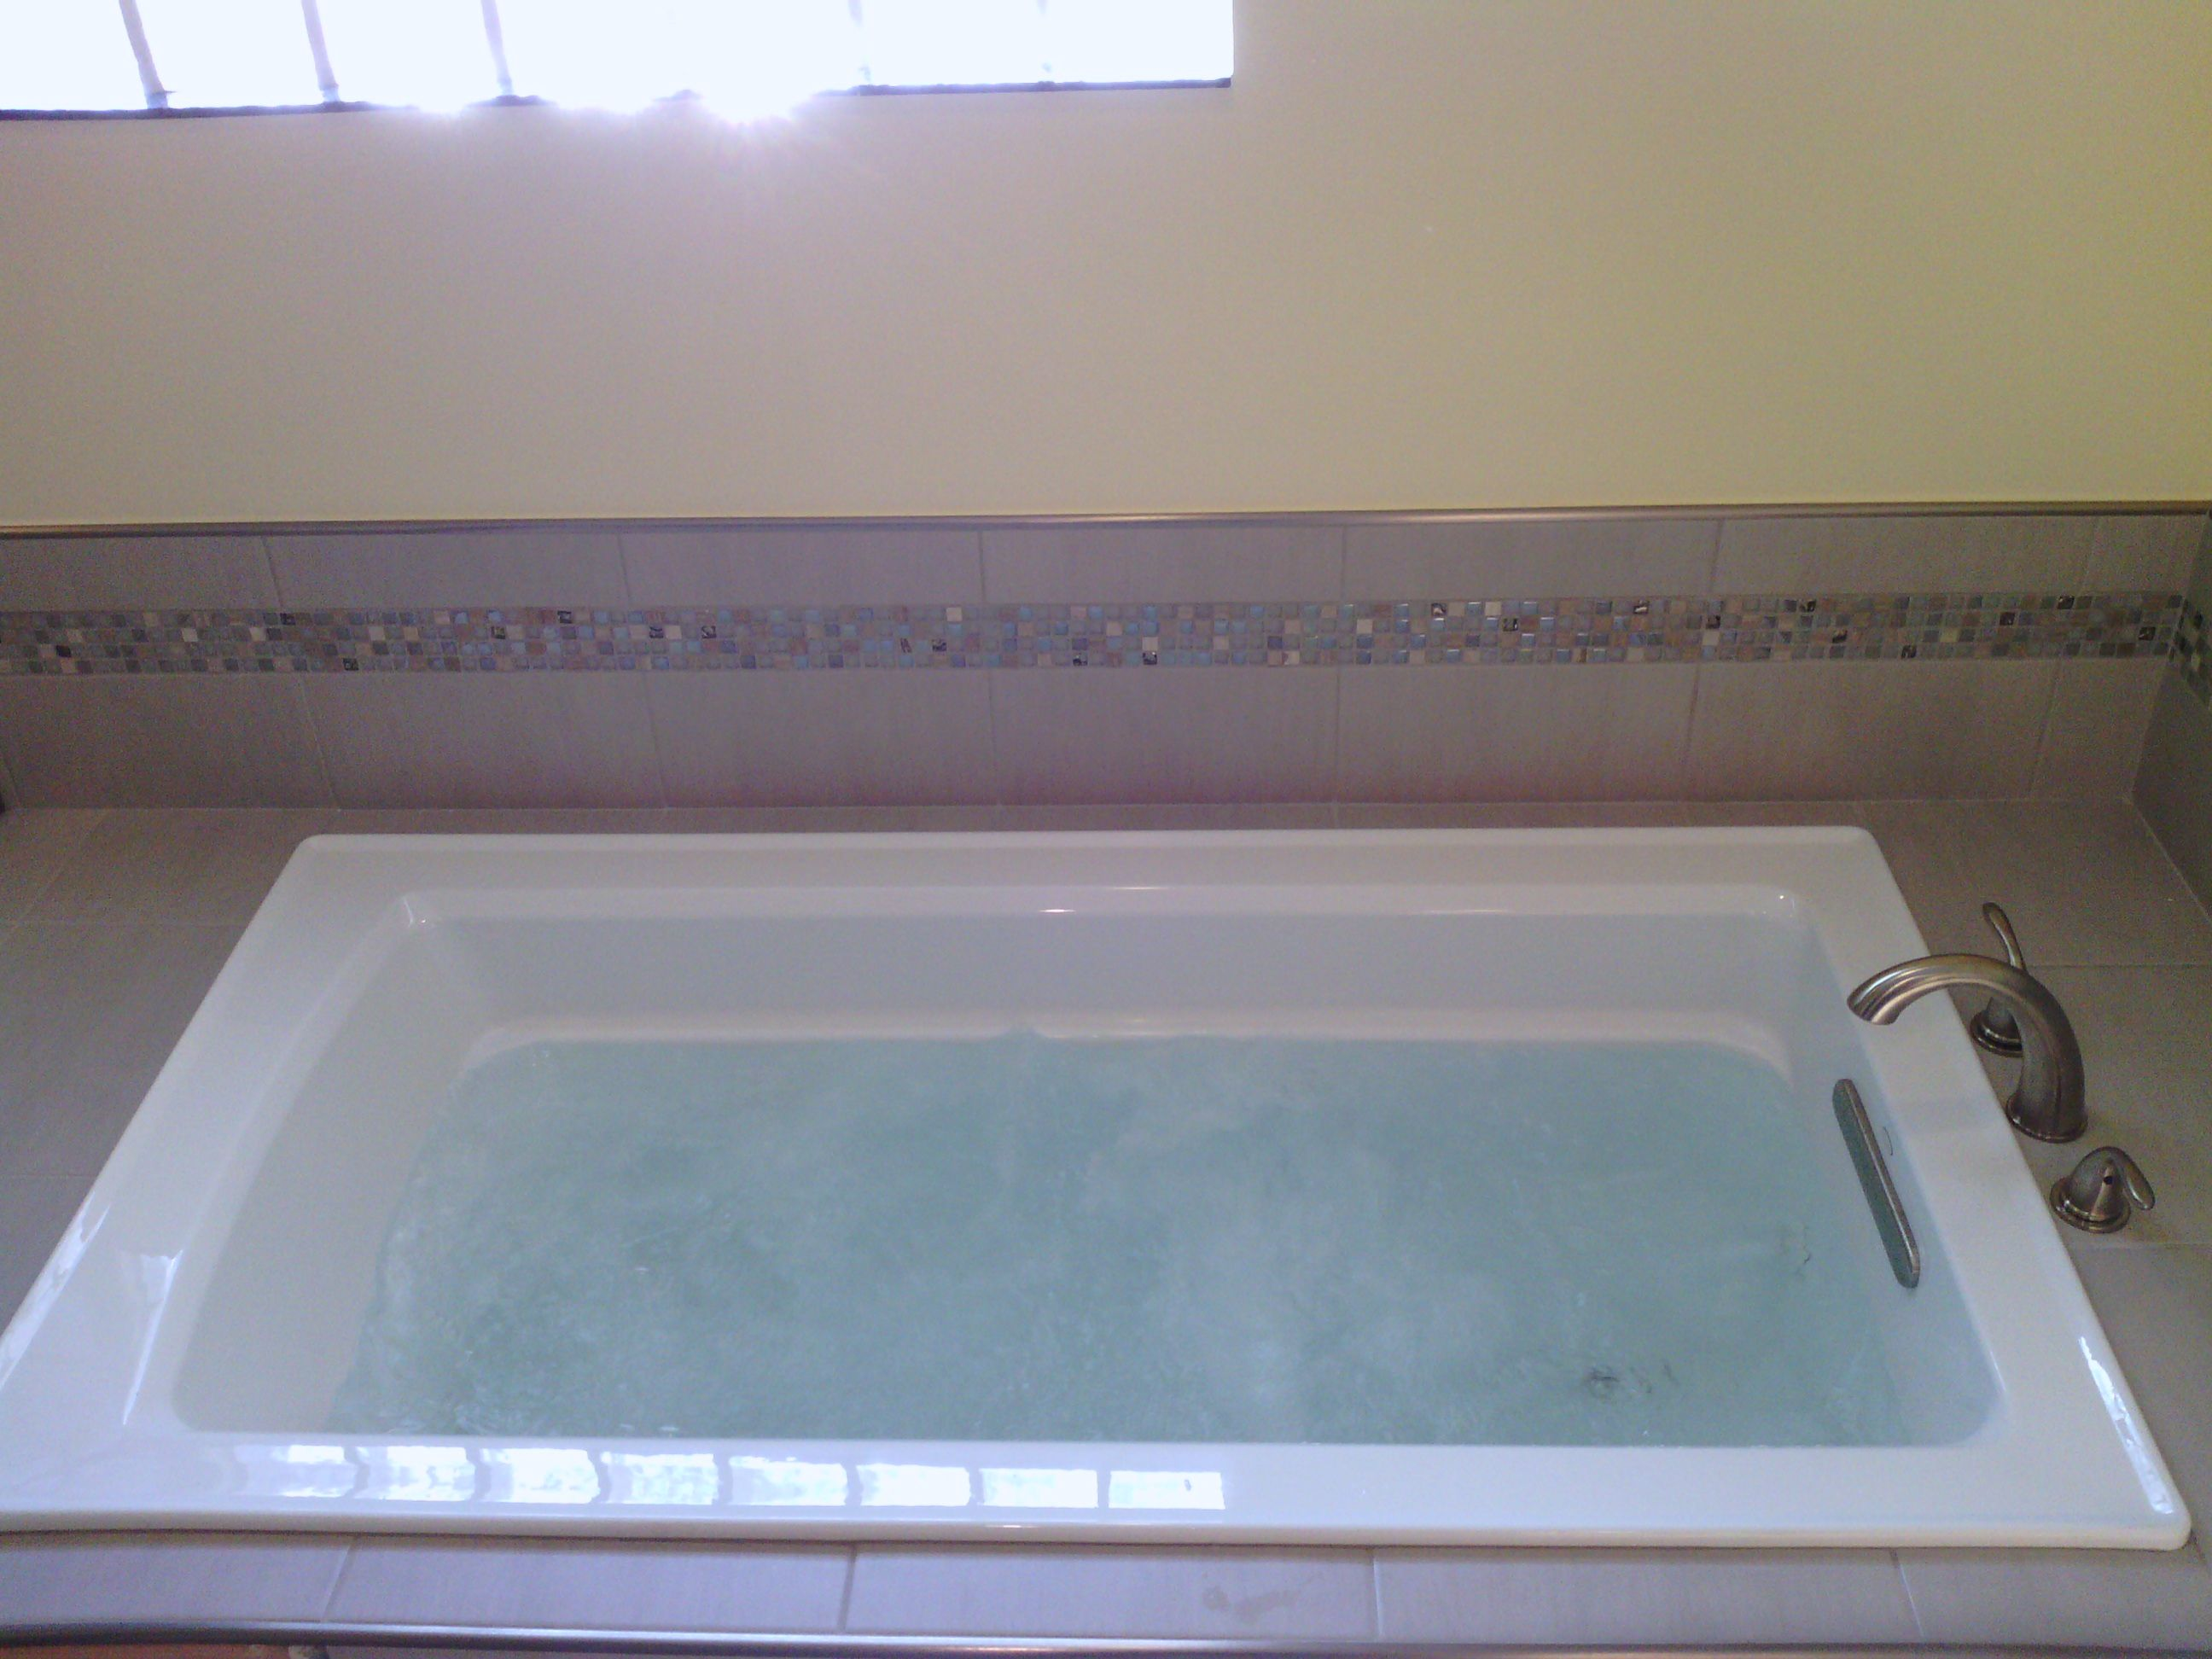 Kohler Whirlpool Bathtub | Bathrooms and kitchens | Pinterest ...